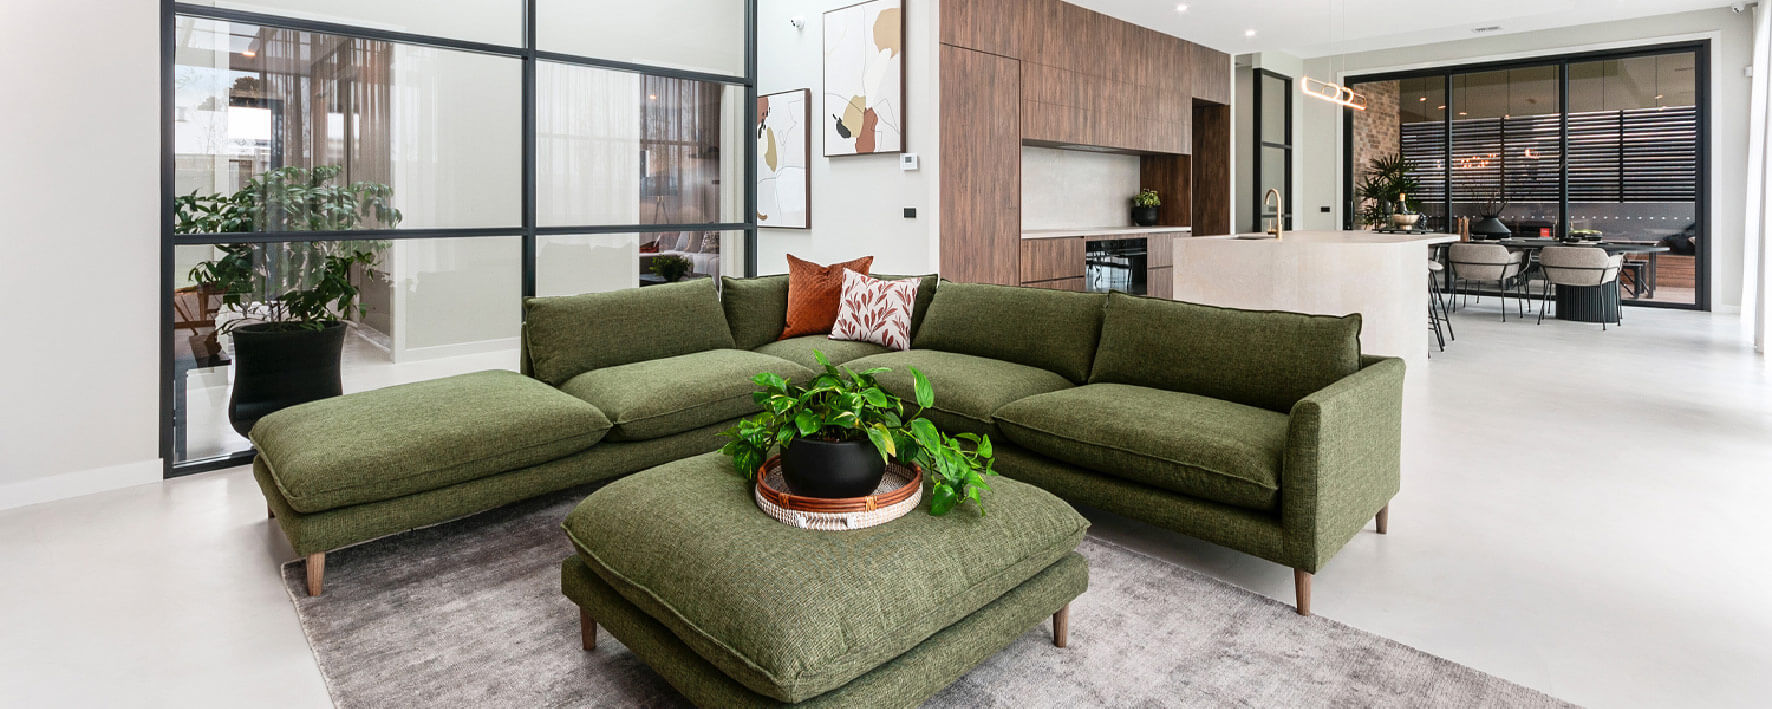 Living room and kitchen of Display Home by Virtue Homes